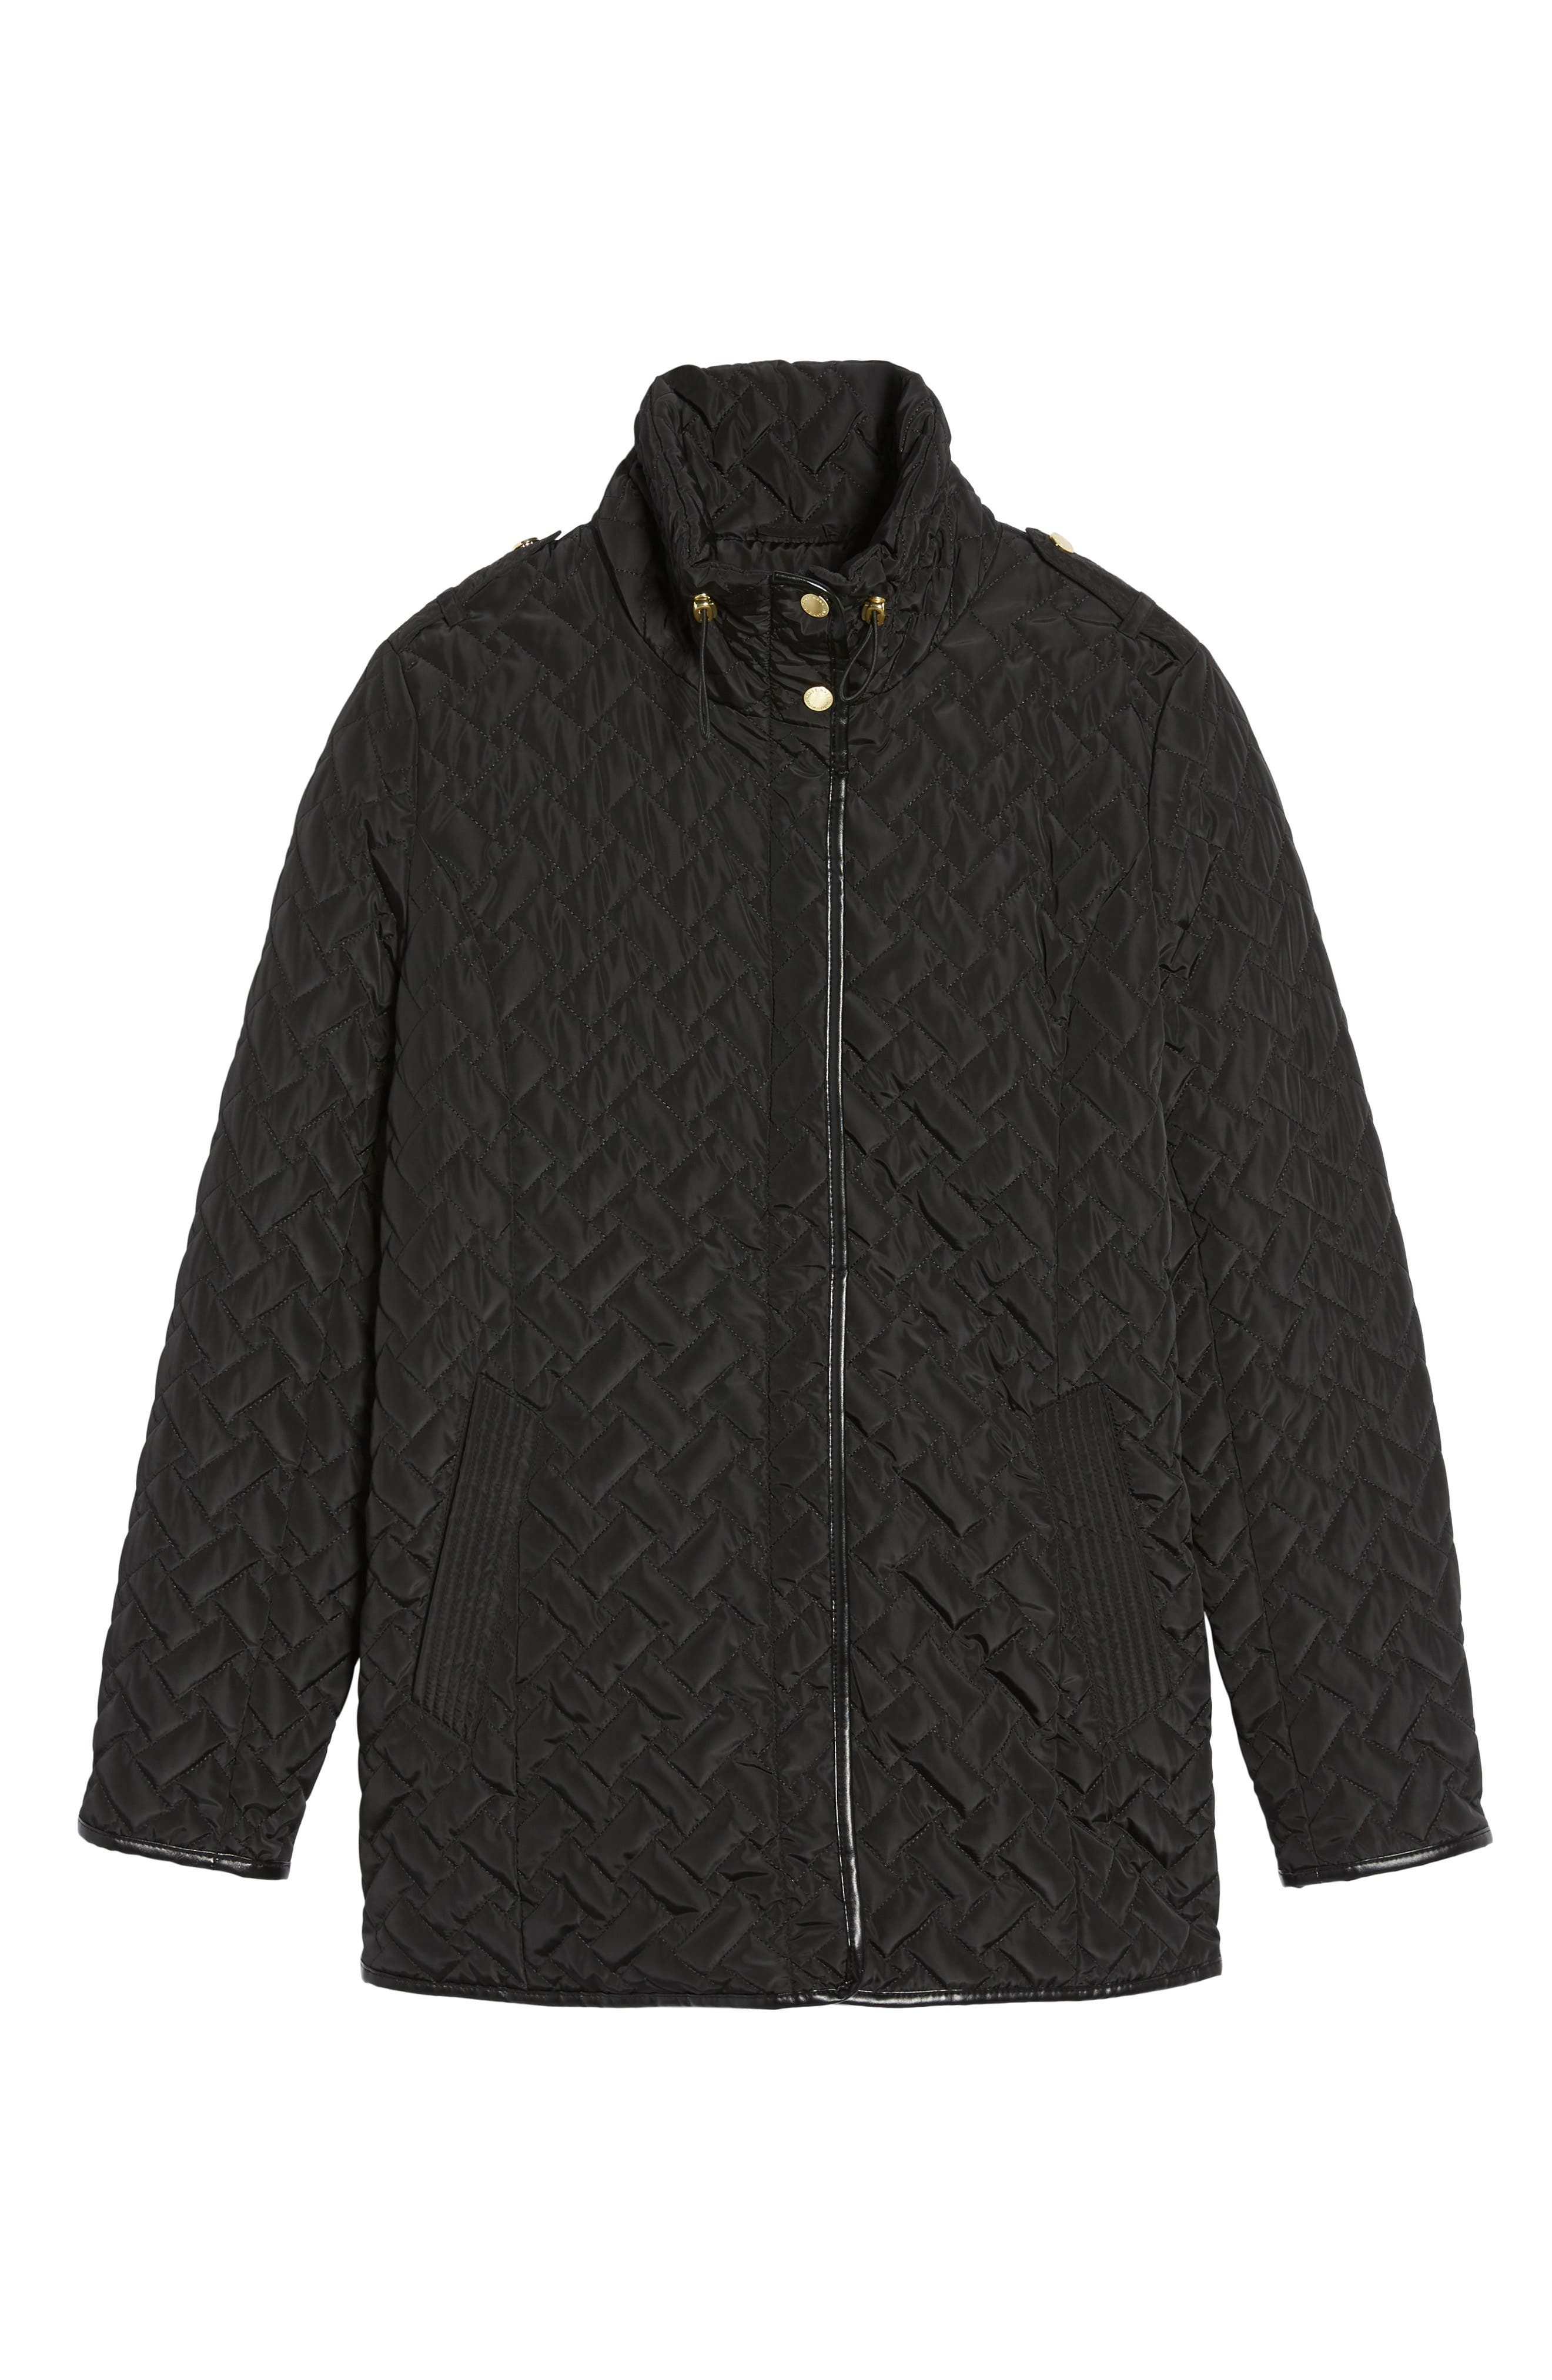 Cole Haan Quilted Jacket,                             Alternate thumbnail 5, color,                             001